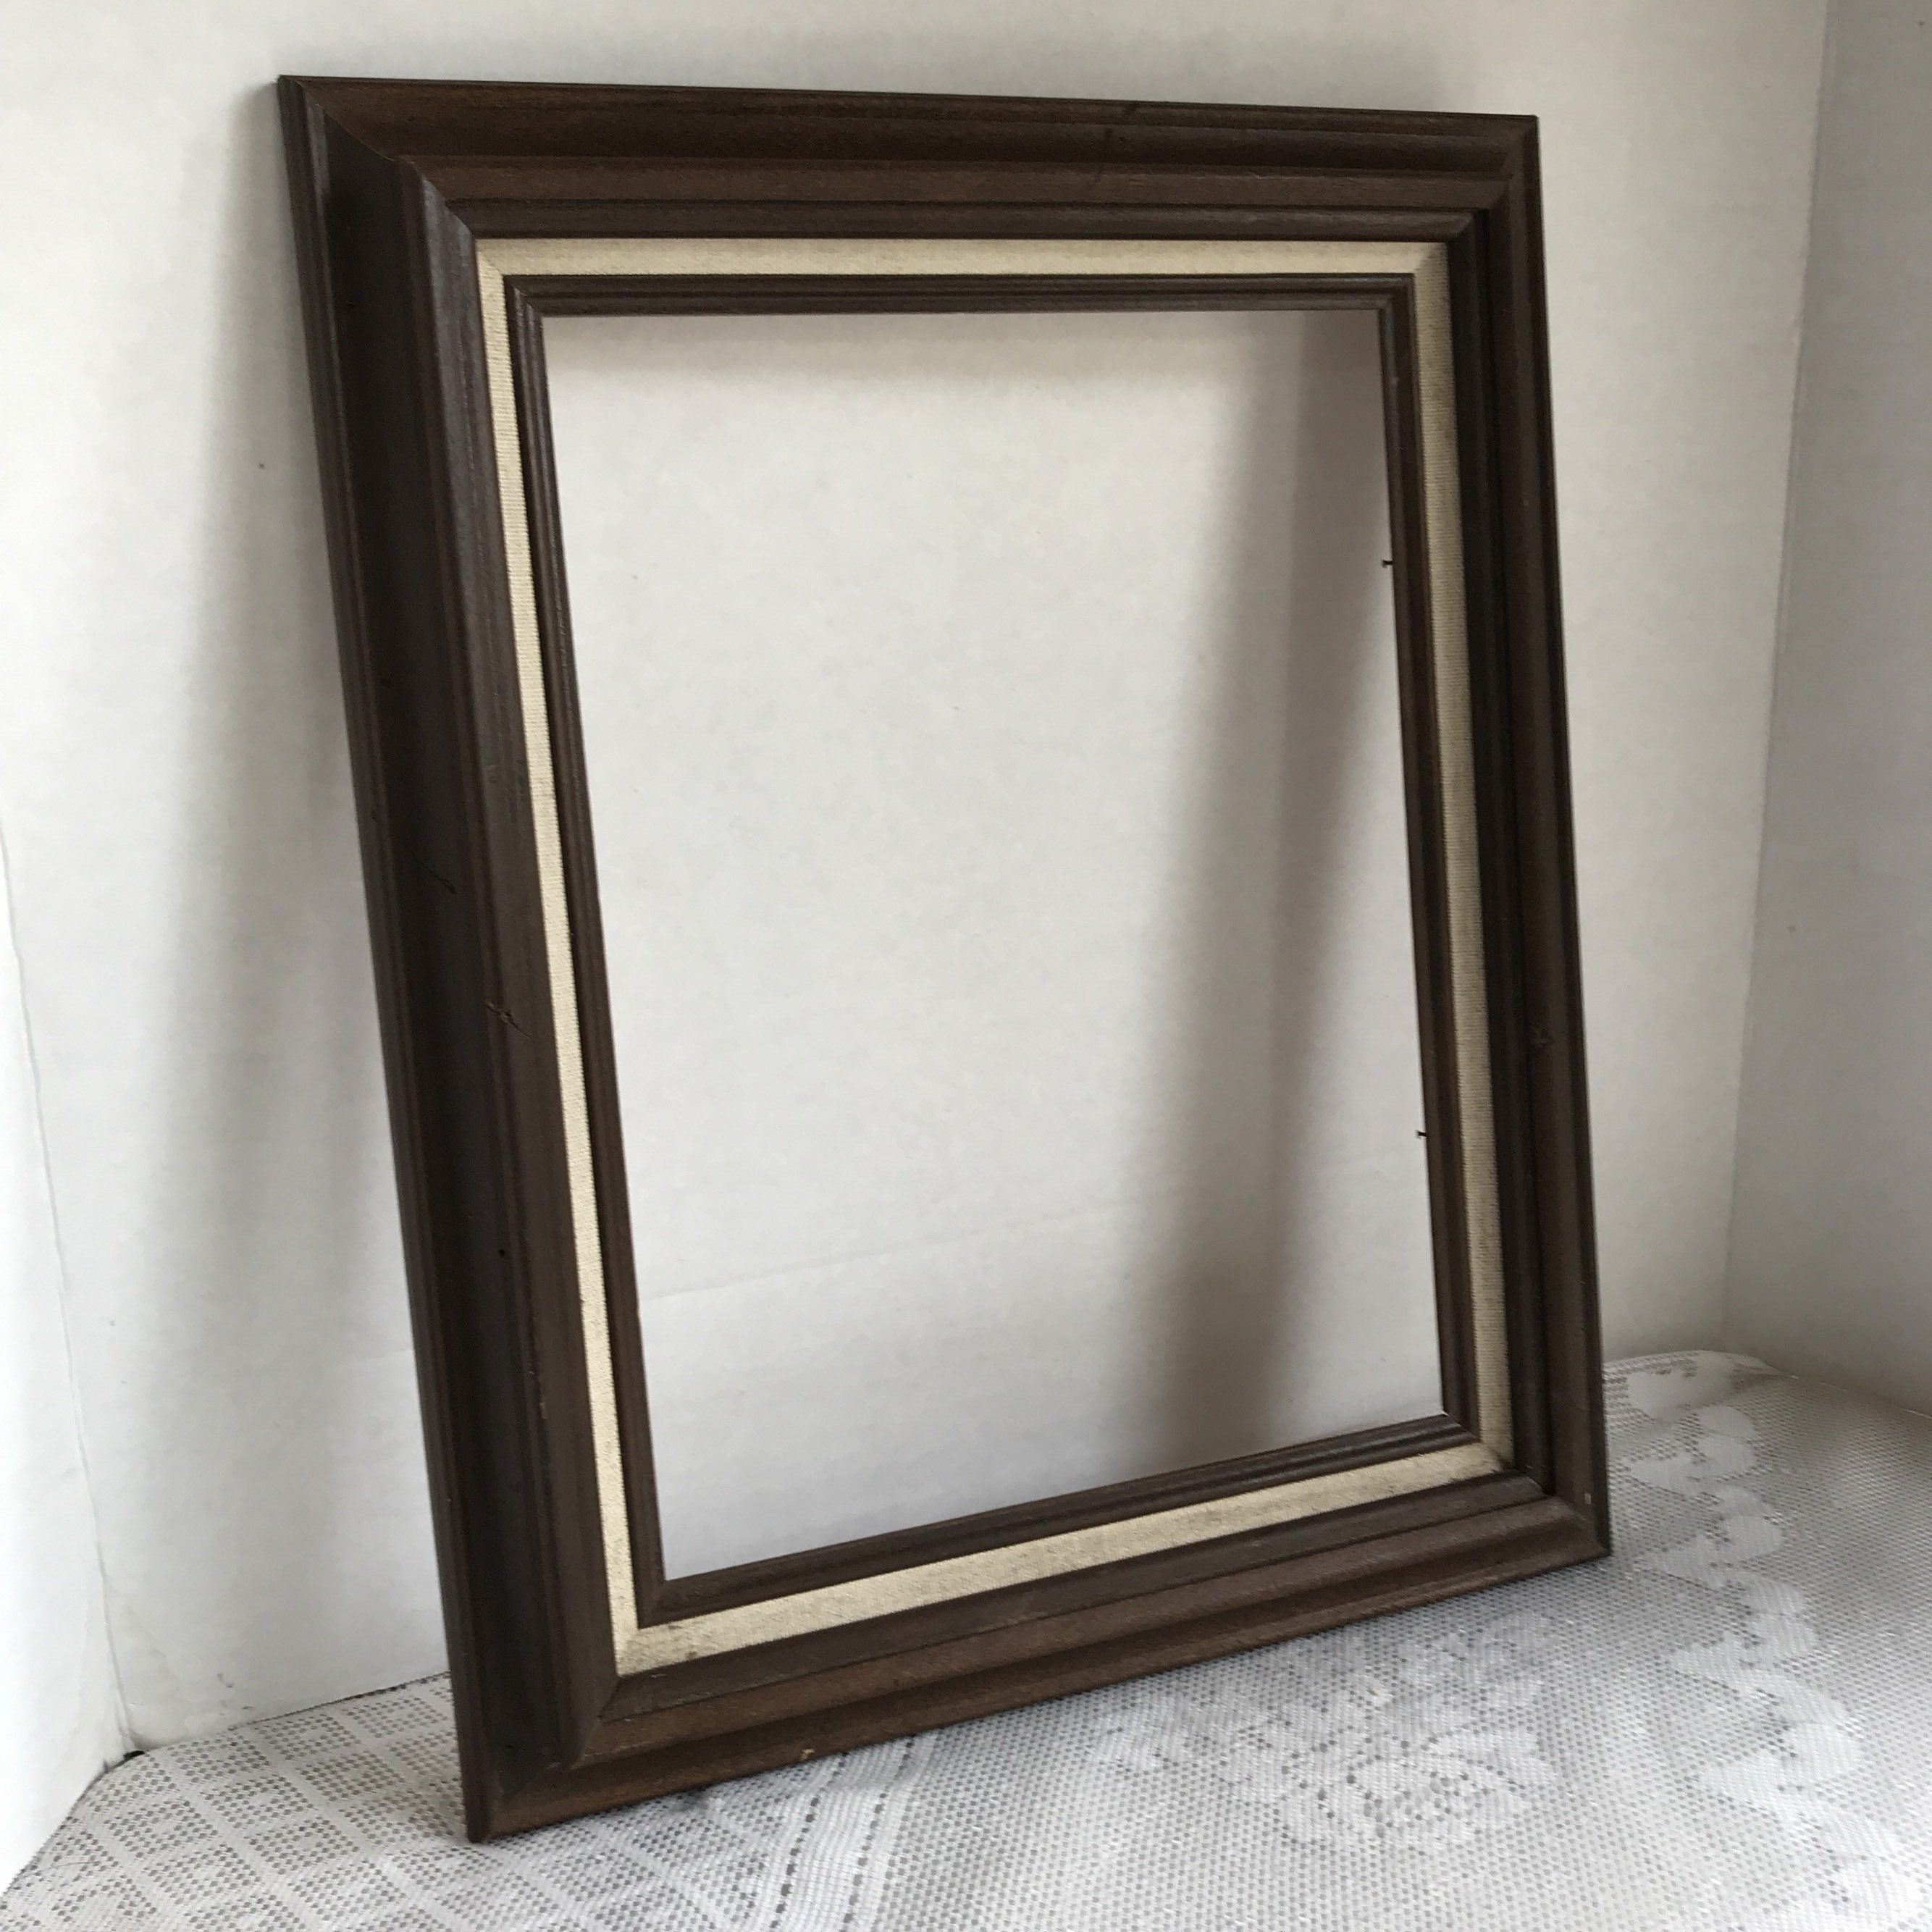 Vintage Brown Wooden Picture Frame 9 X 12 Inch Wood Frame Wooden Picture Frames Picture Frames Etsy Vintage